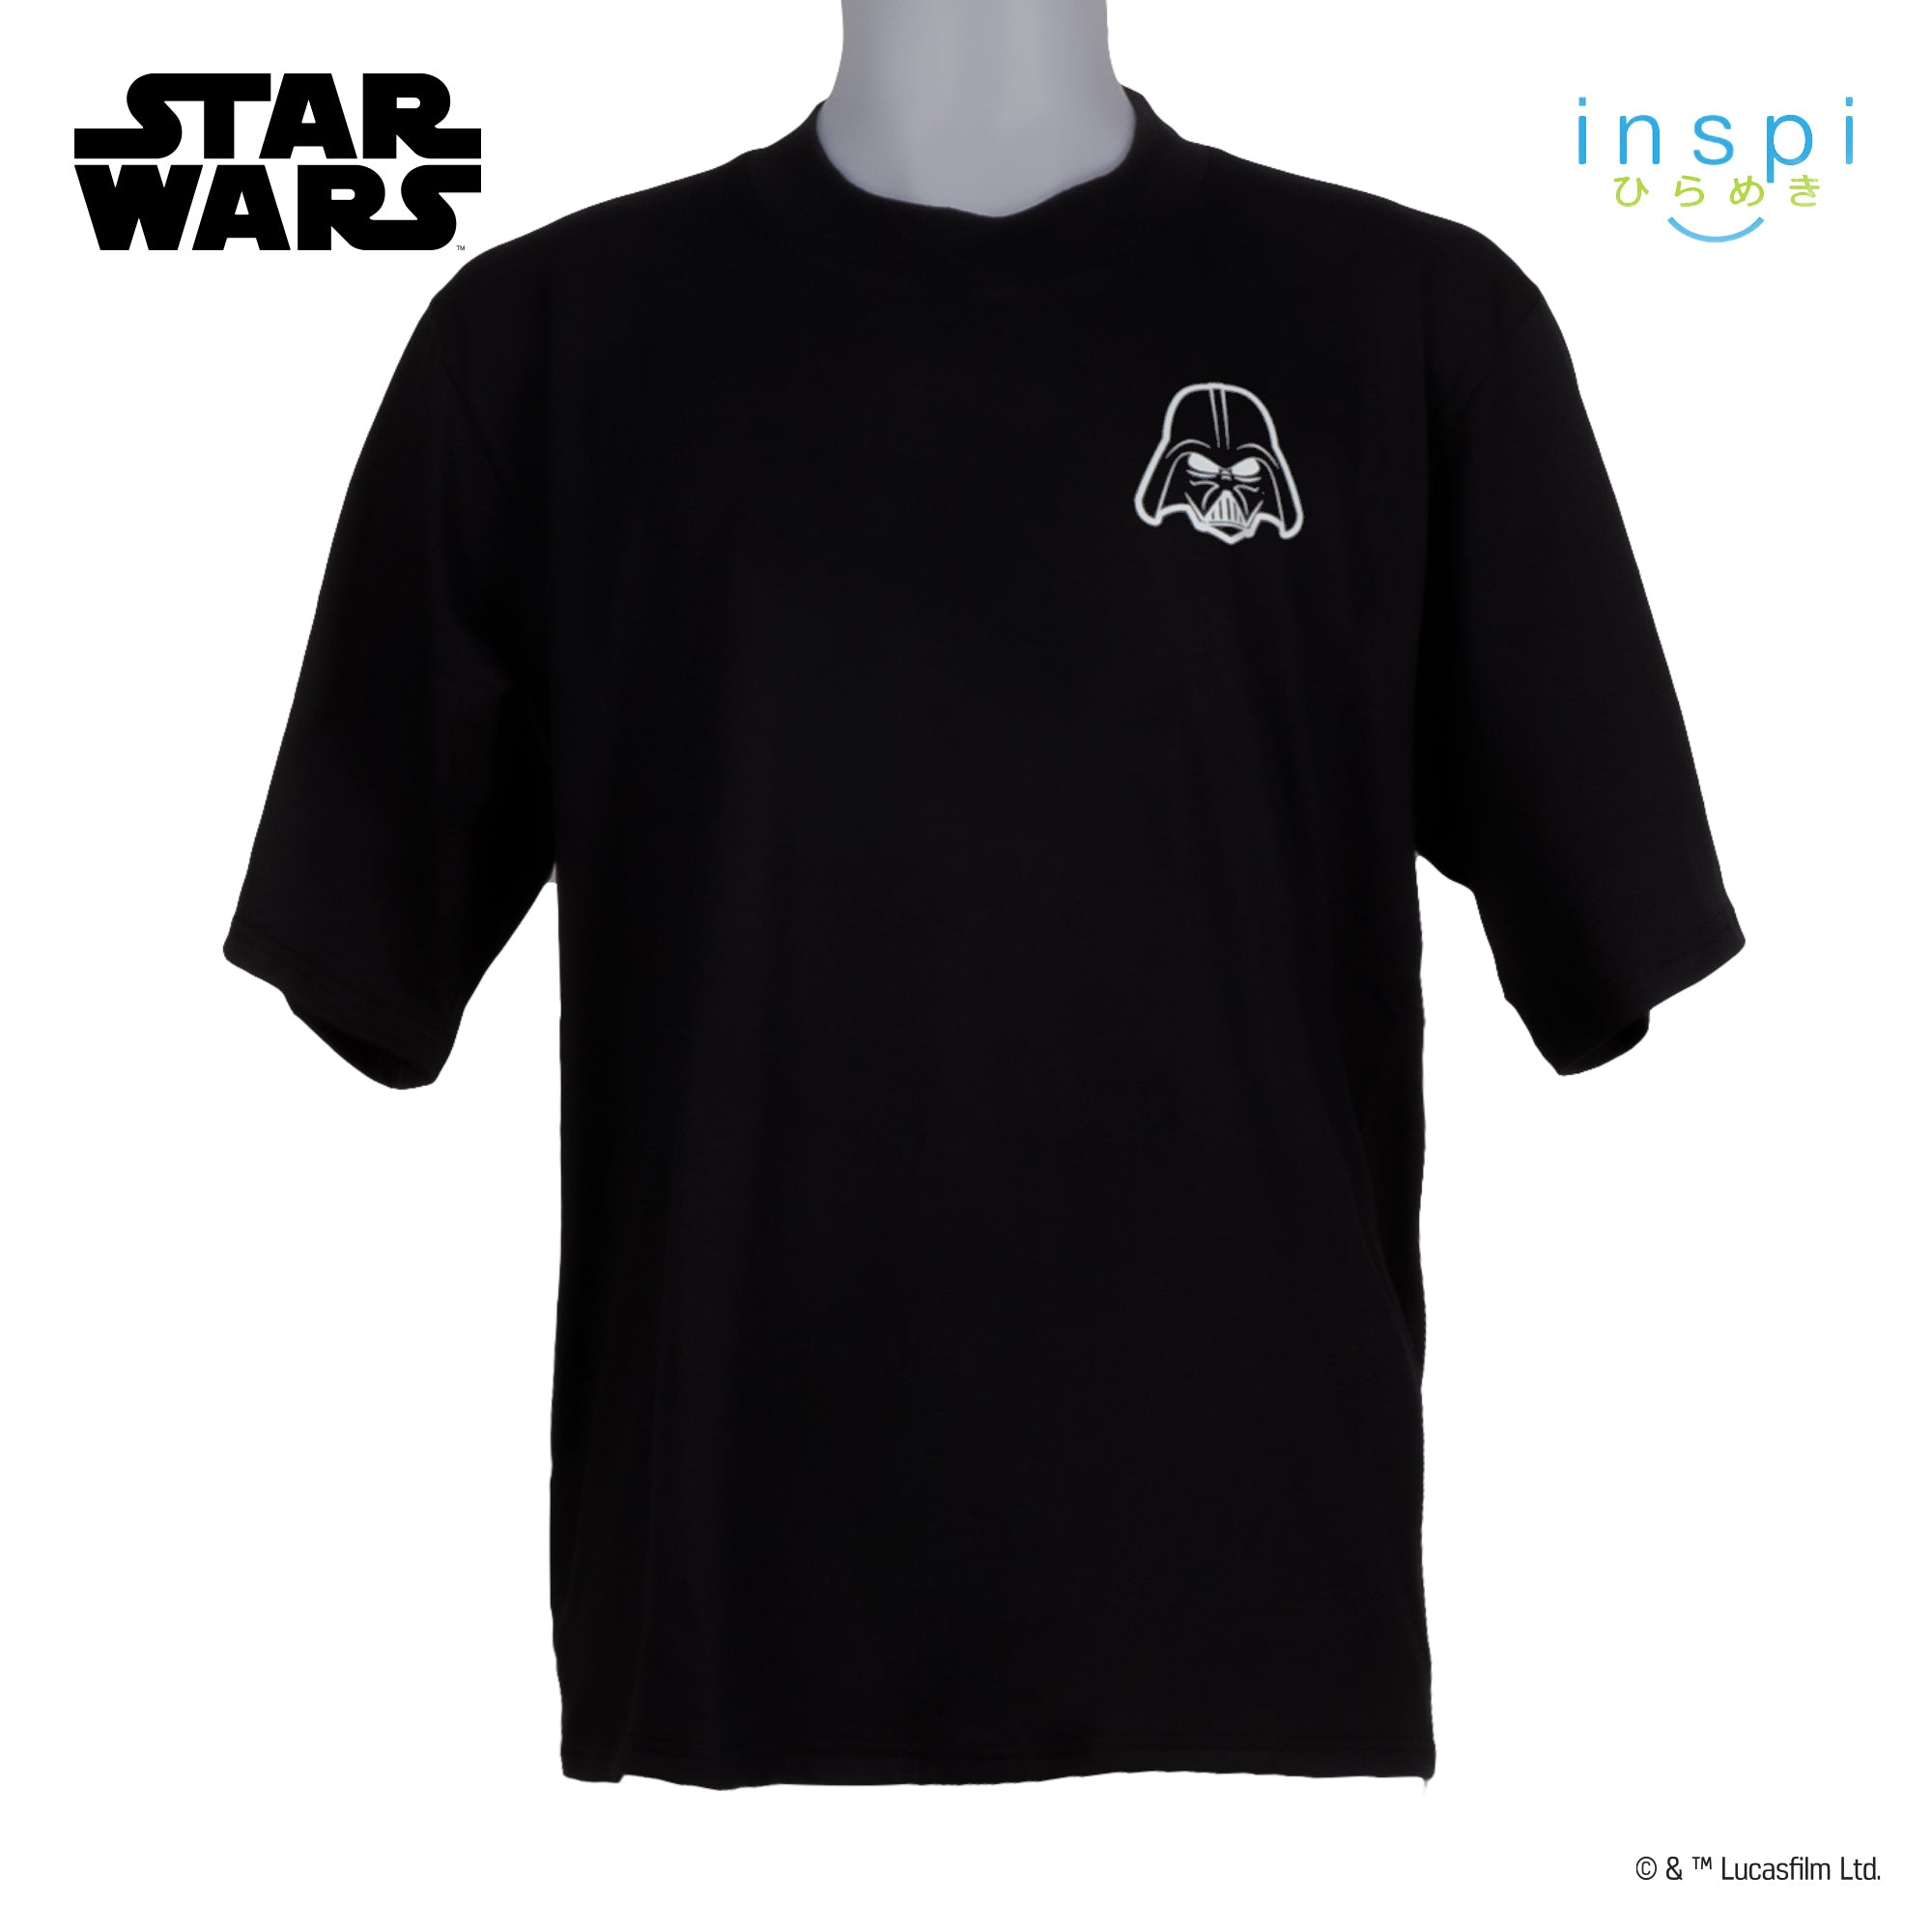 Star Wars Loose Fit The Force is Strong With You Graphic Korean Oversized Tshirt in Black Inspi Tee